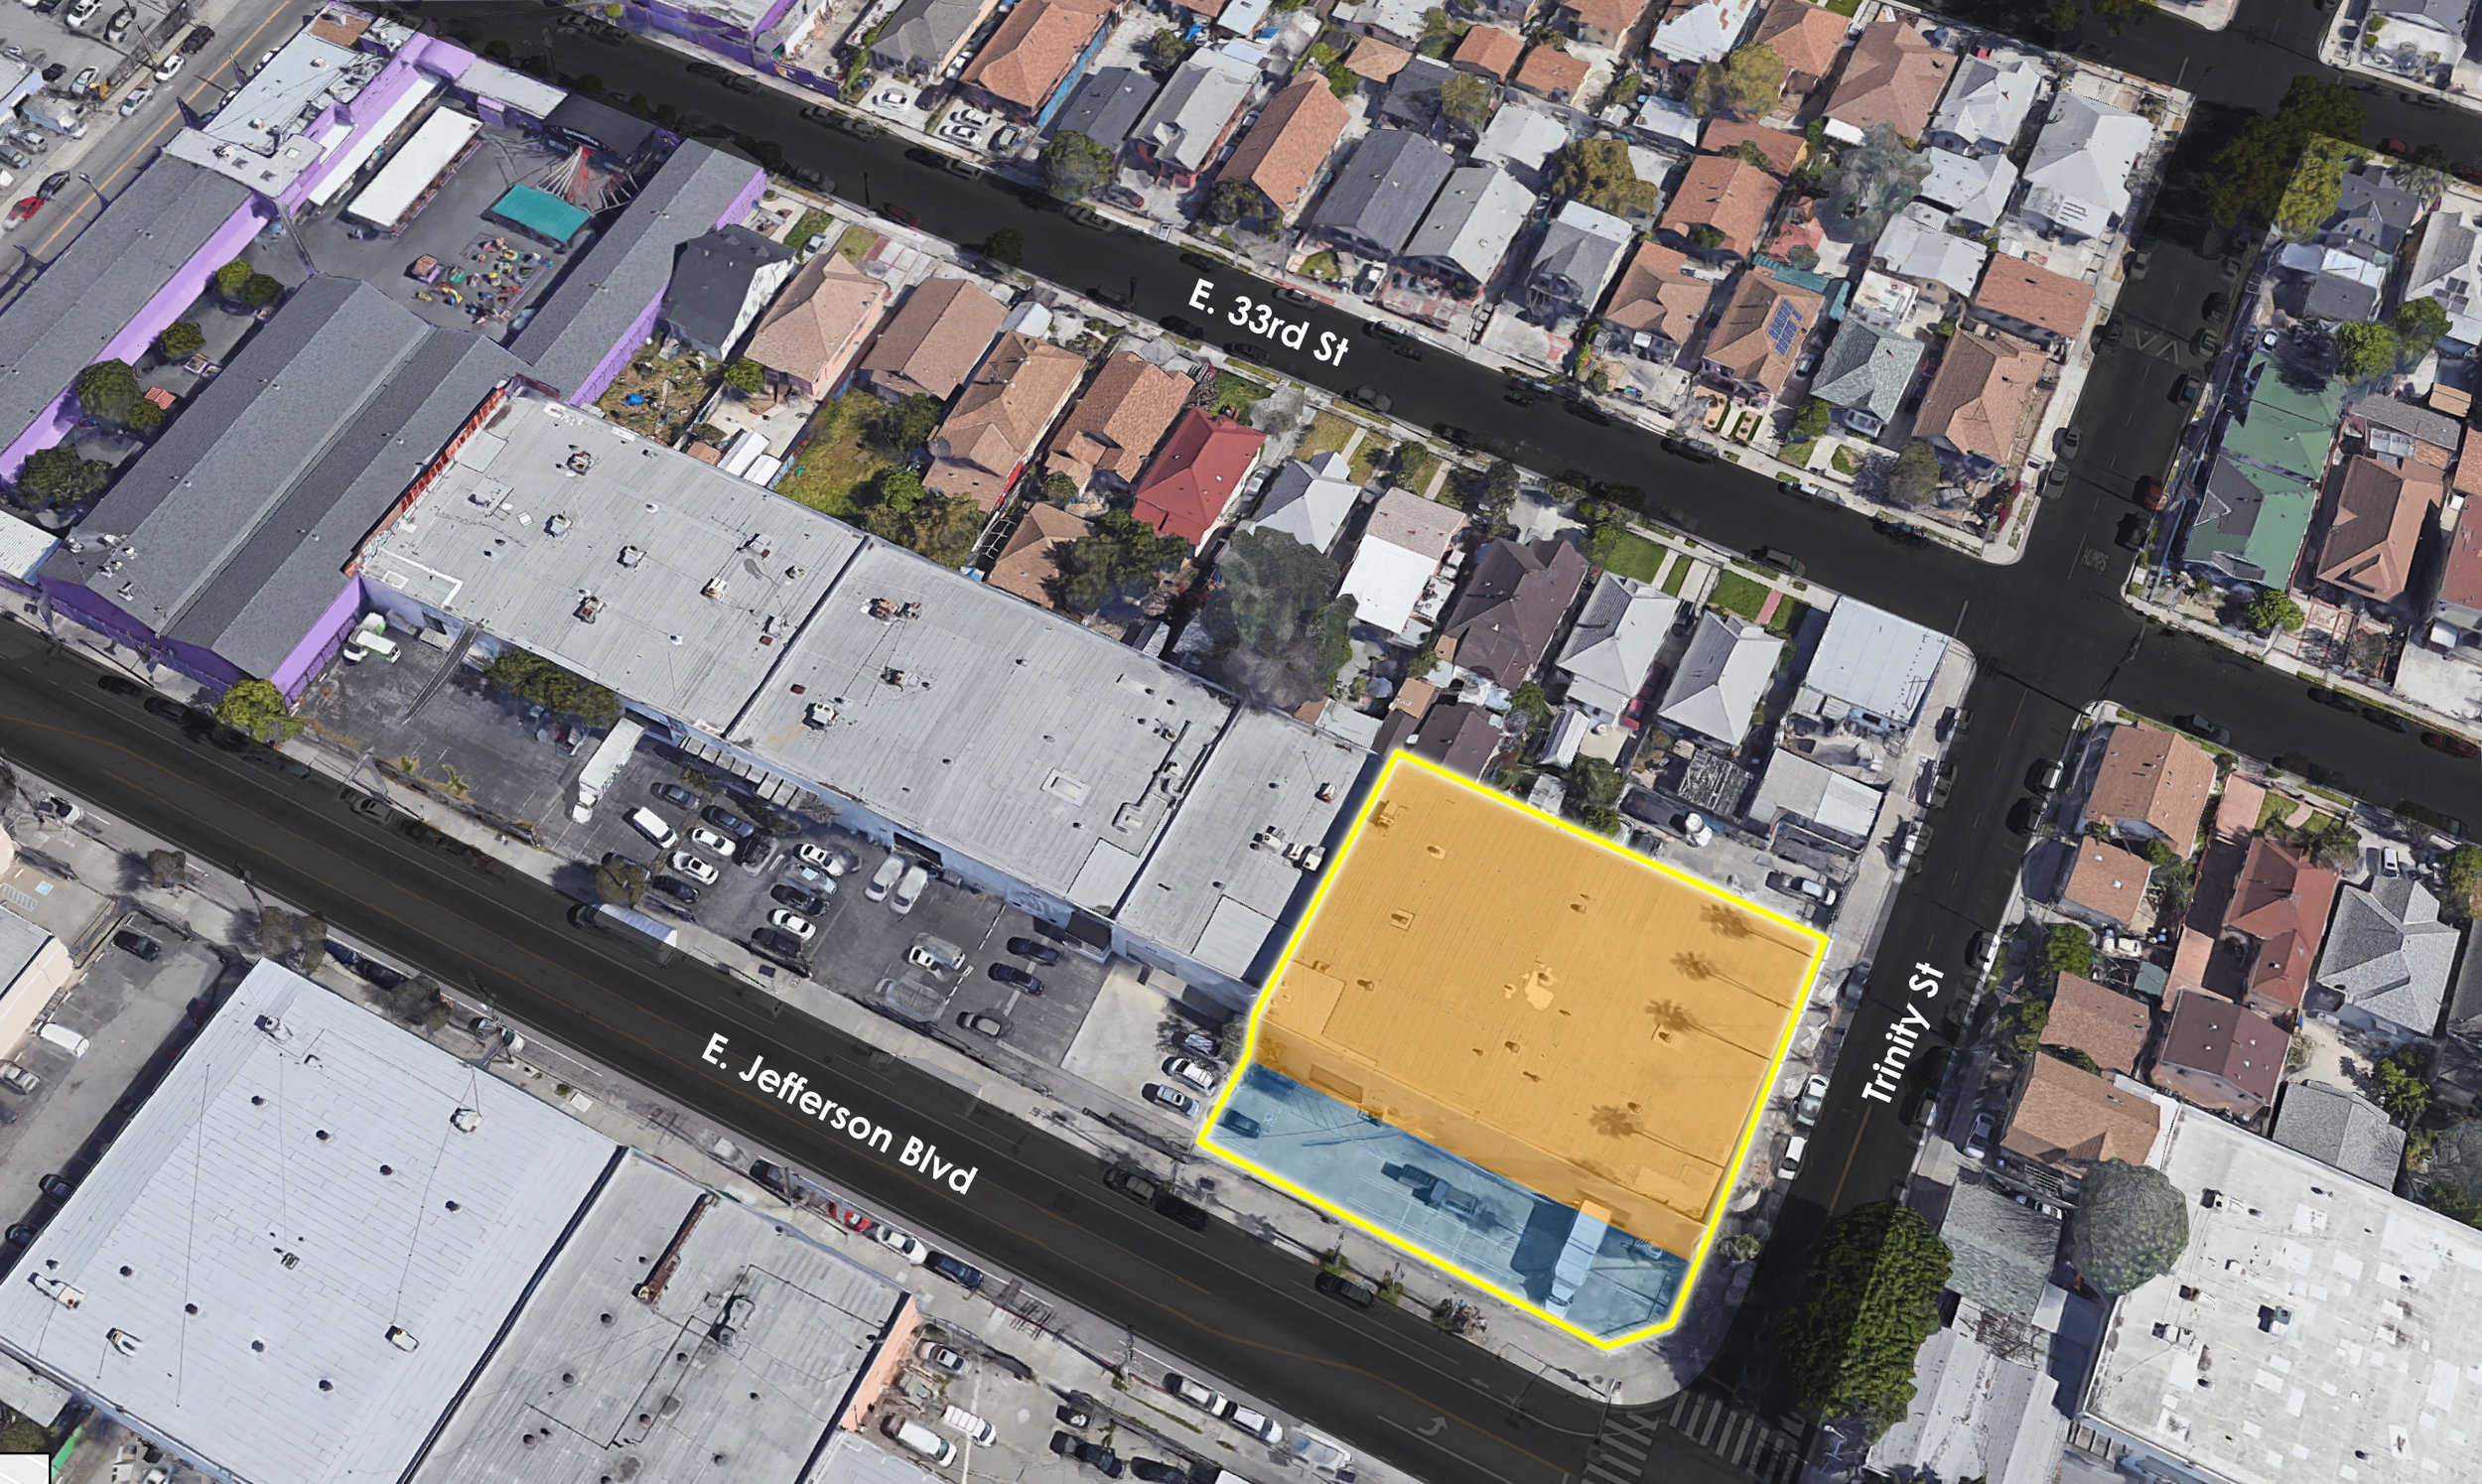 365 East JEFFERSON Boulevard, LOS ANGELES, CA 90011 - - LEASE RATE: TBD- BUILDING: 32,400 SF- TYPE: Industrial